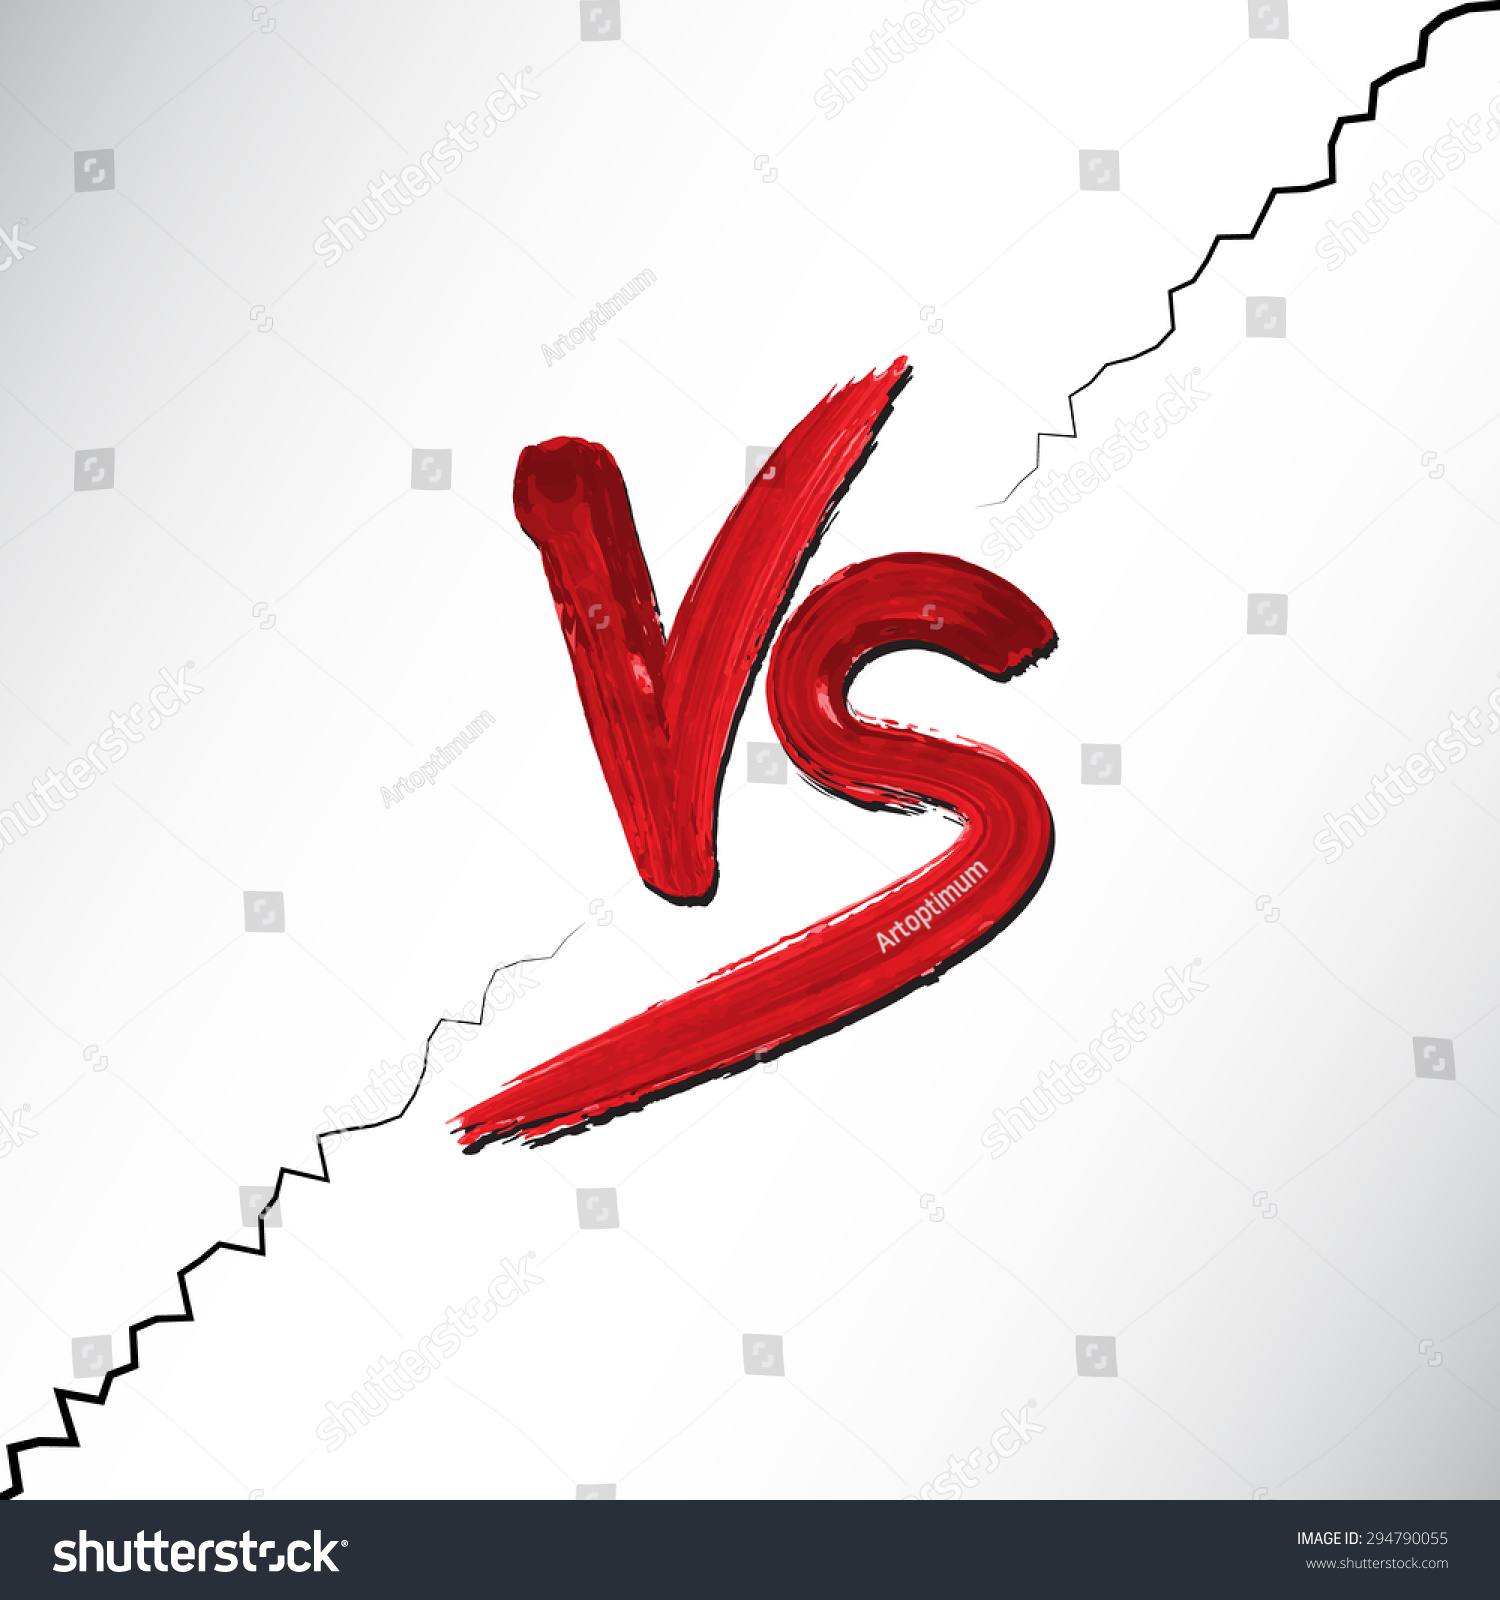 / Vs Versus Letters Vs Logo Red Watercolored Stock Vector